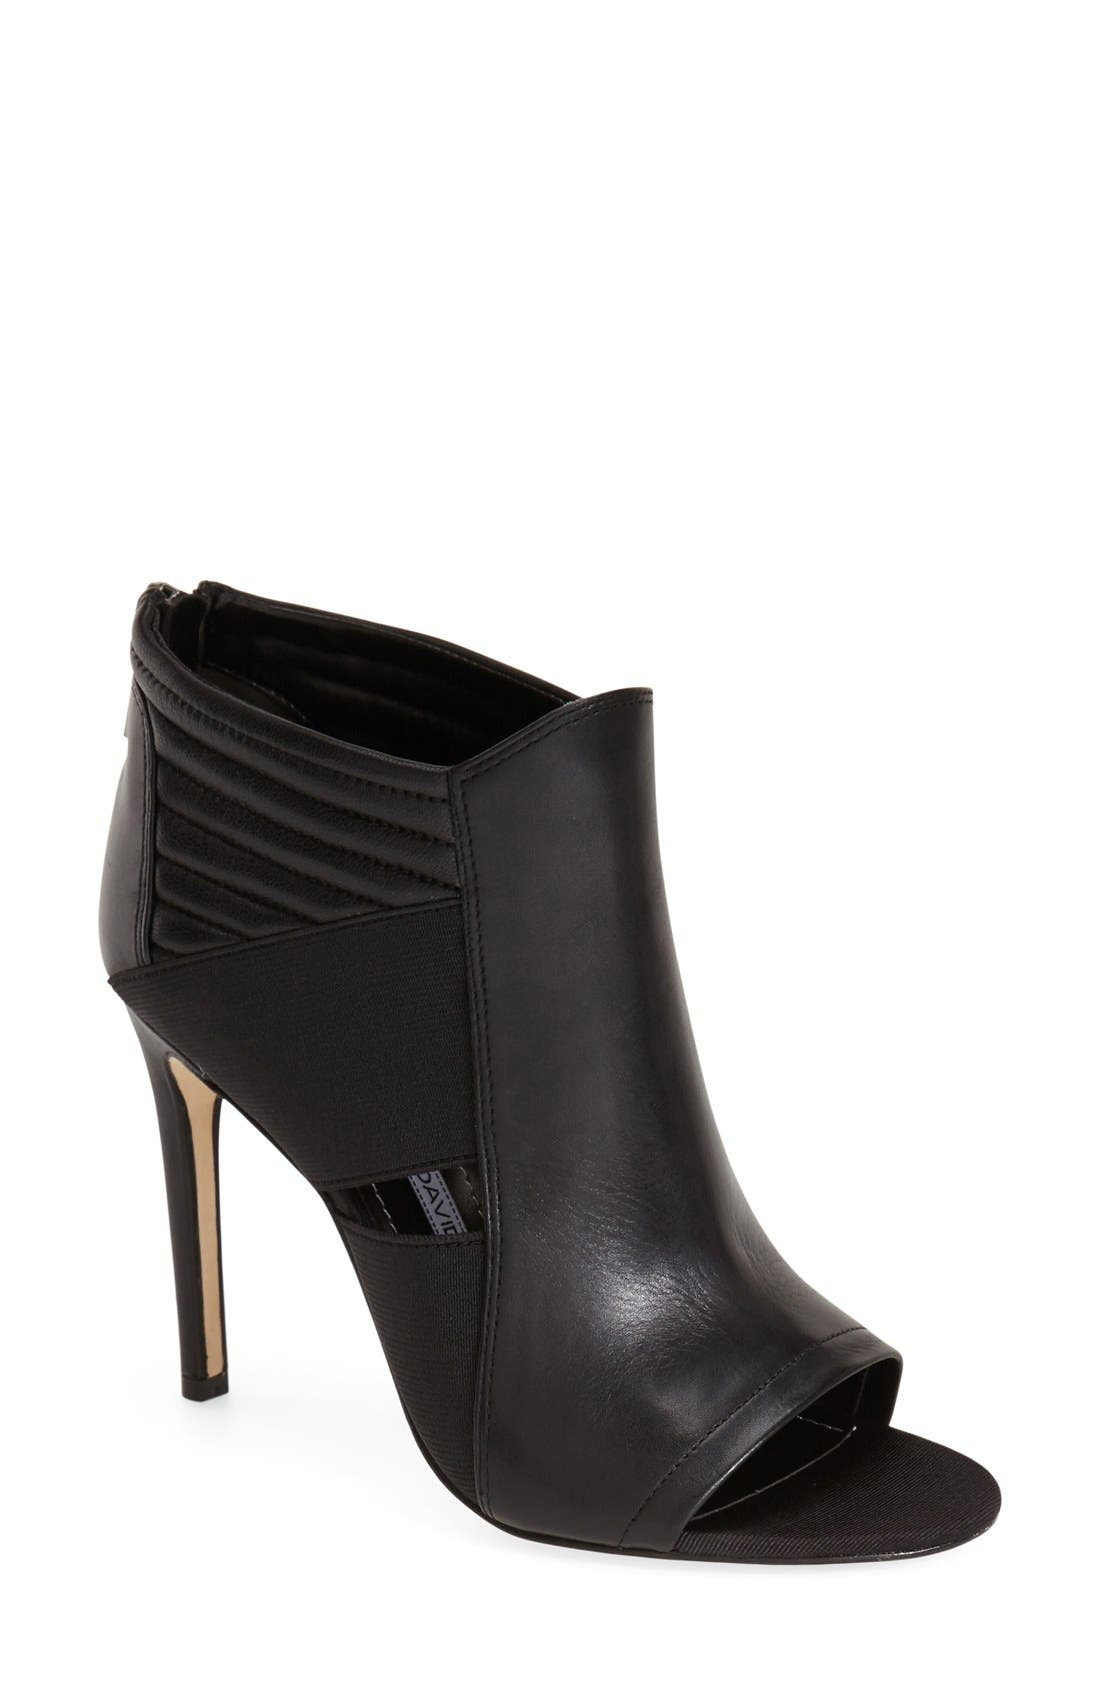 Alternate Image 1 Selected - Charles David 'Donna' Peep Toe Bootie (Women)